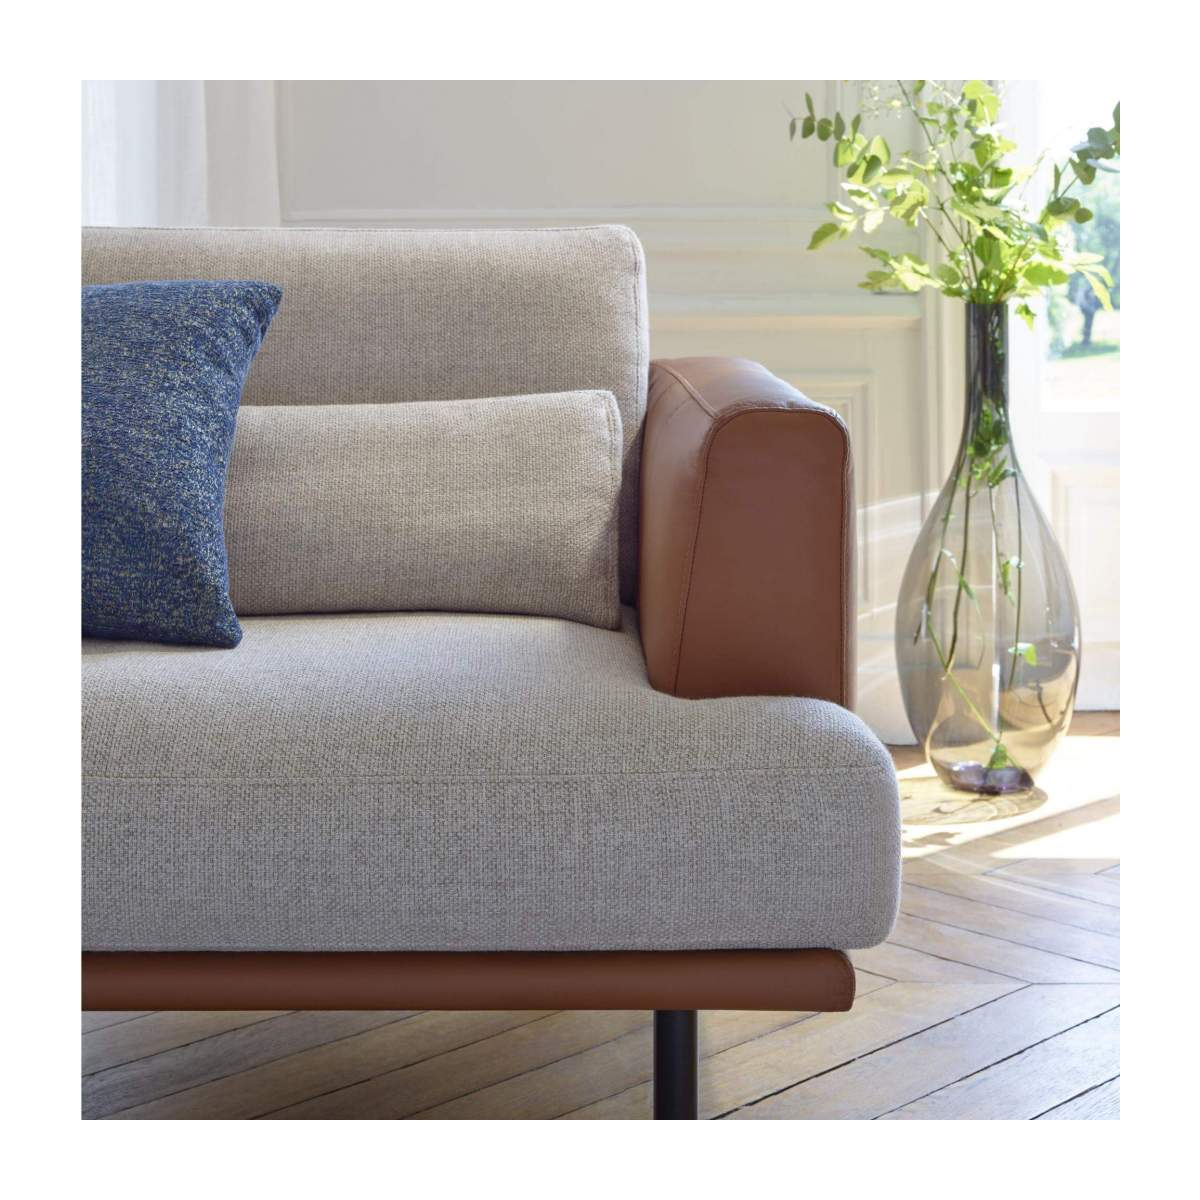 2 seater sofa in Lecce fabric, muscat with base and armrests in brown leather n°6